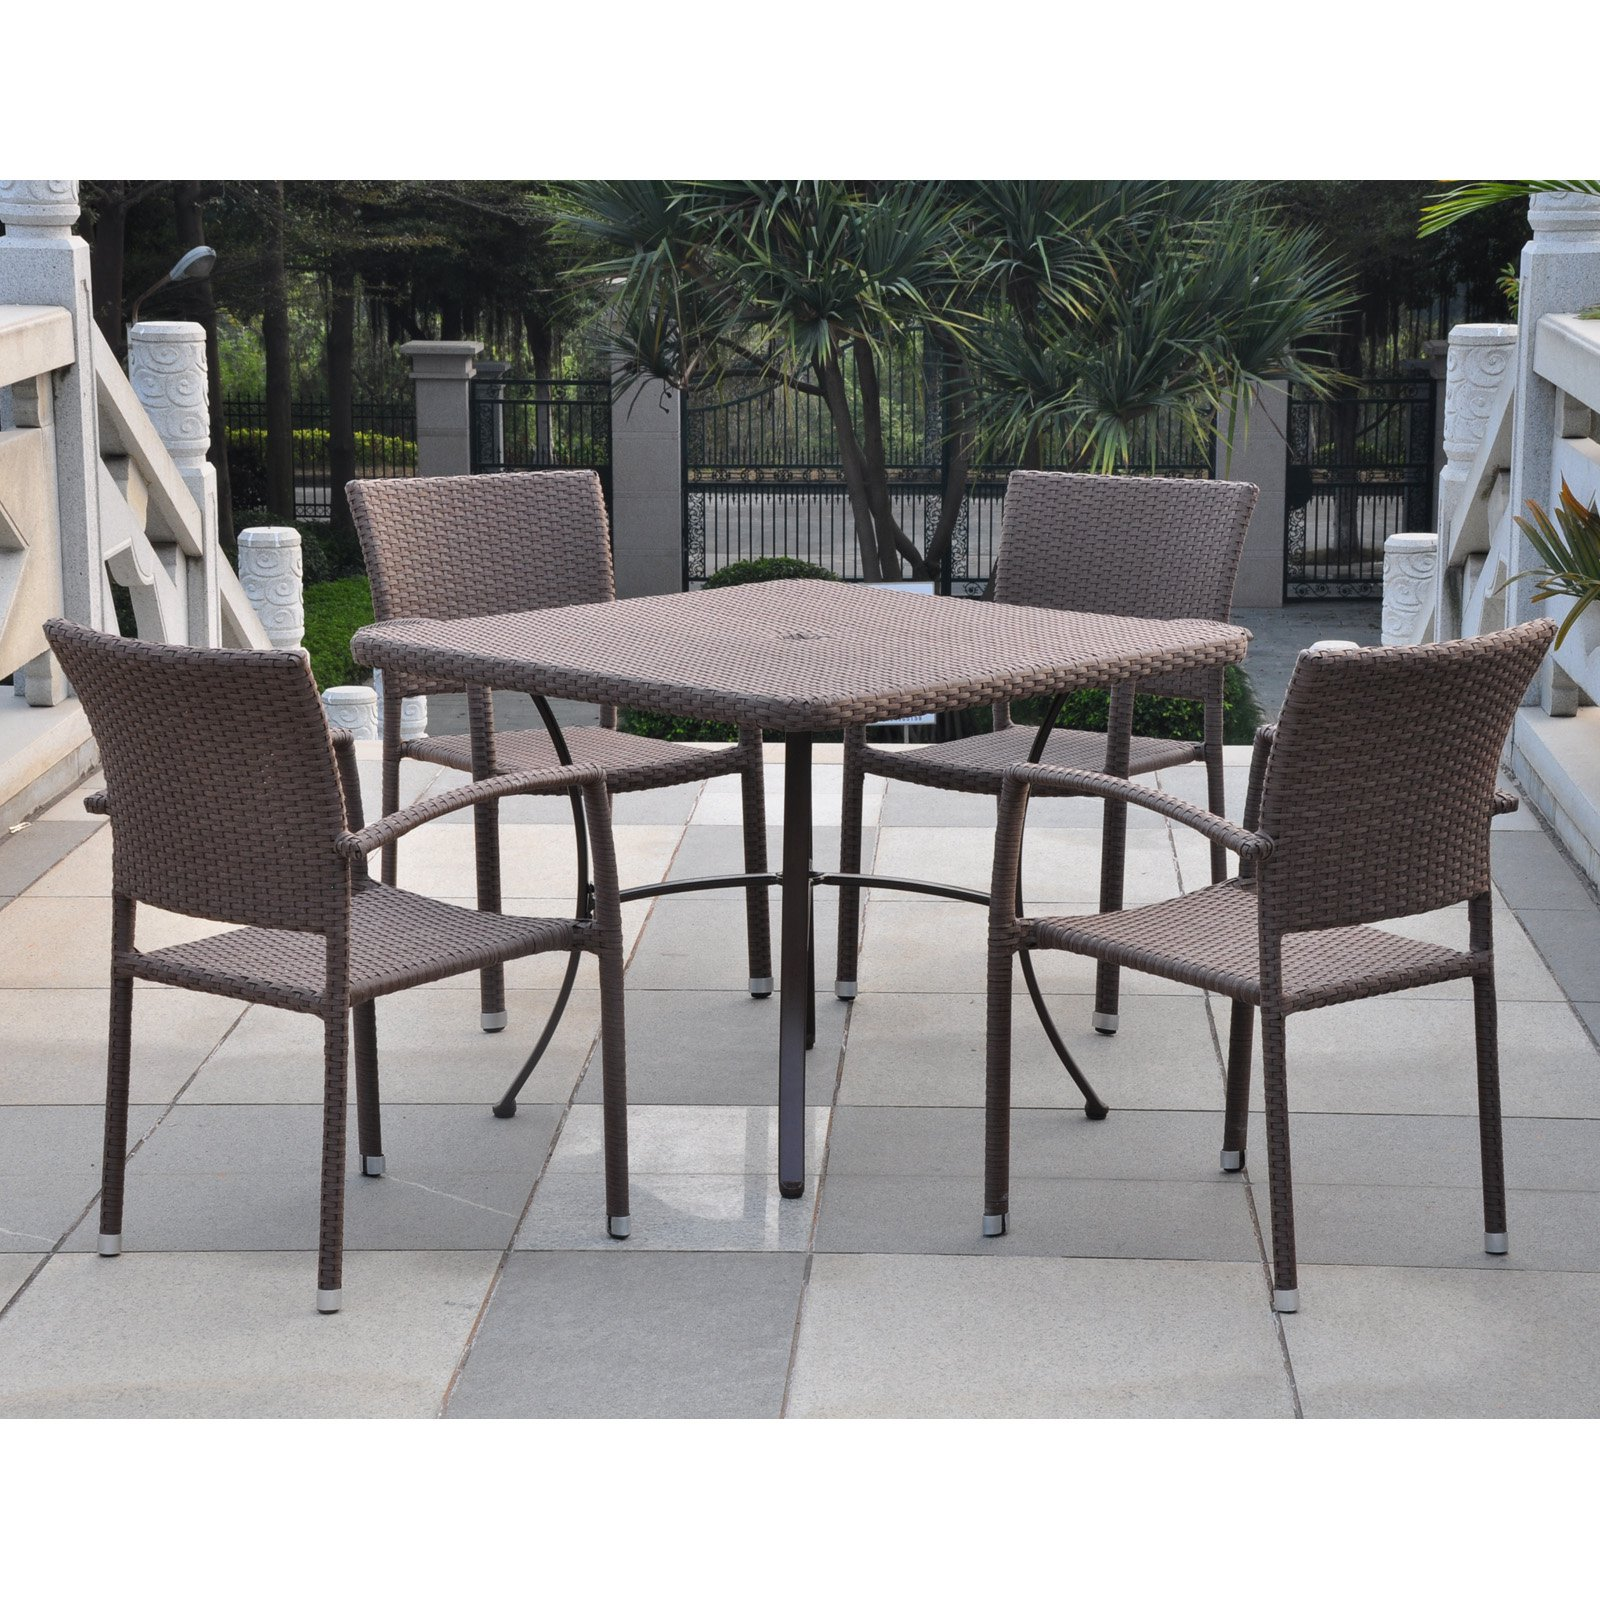 Fresh Patio Furniture Dining Sets Clearance